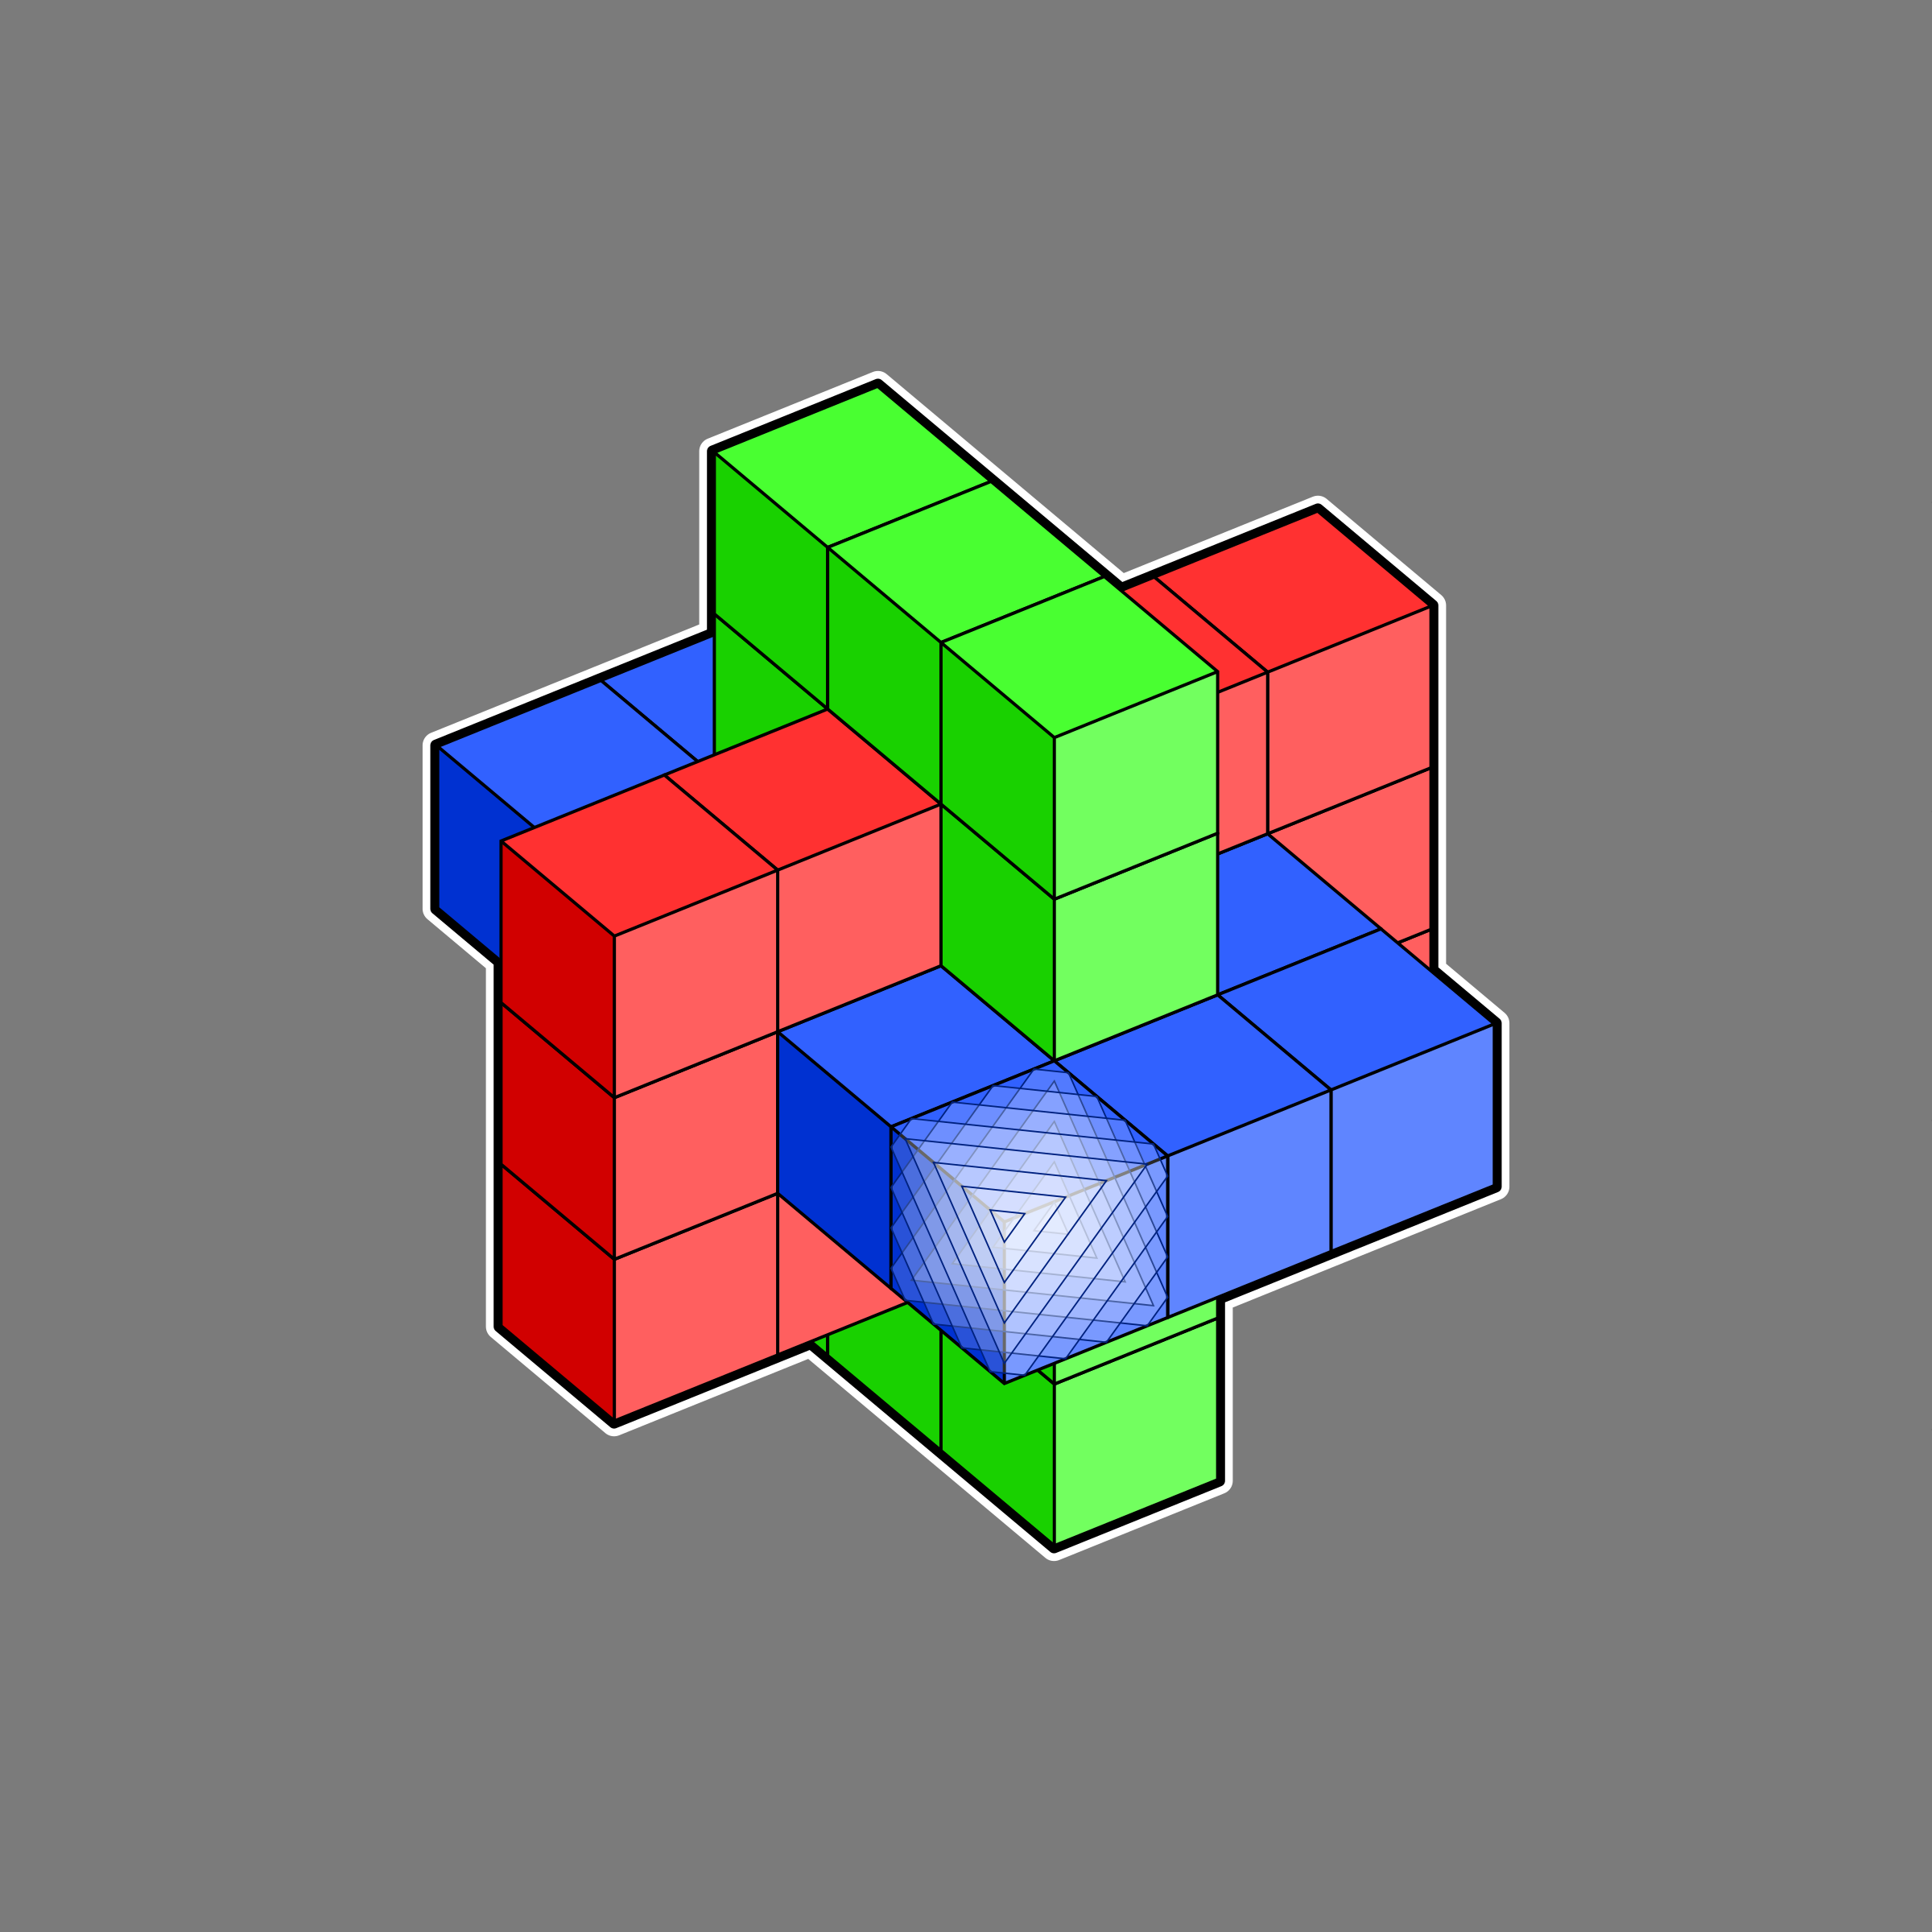 interlocking cubes 2 by Lazur URH